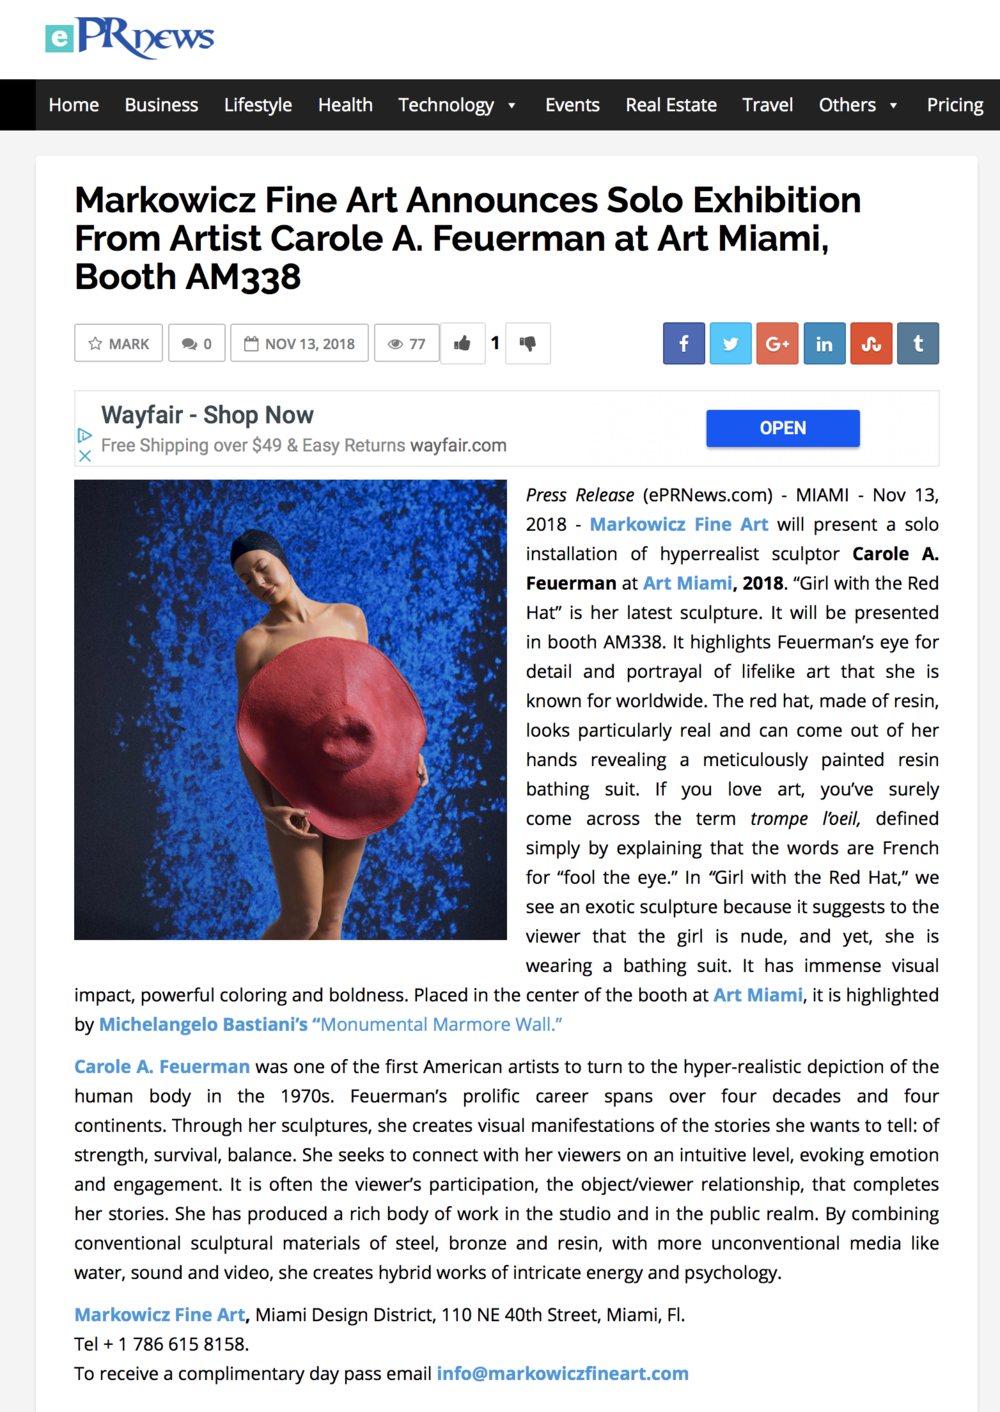 Markowicz Fine Art Announces Solo Exhibition From Artist Carole A. Feuerman at Art Miami, Booth AM338